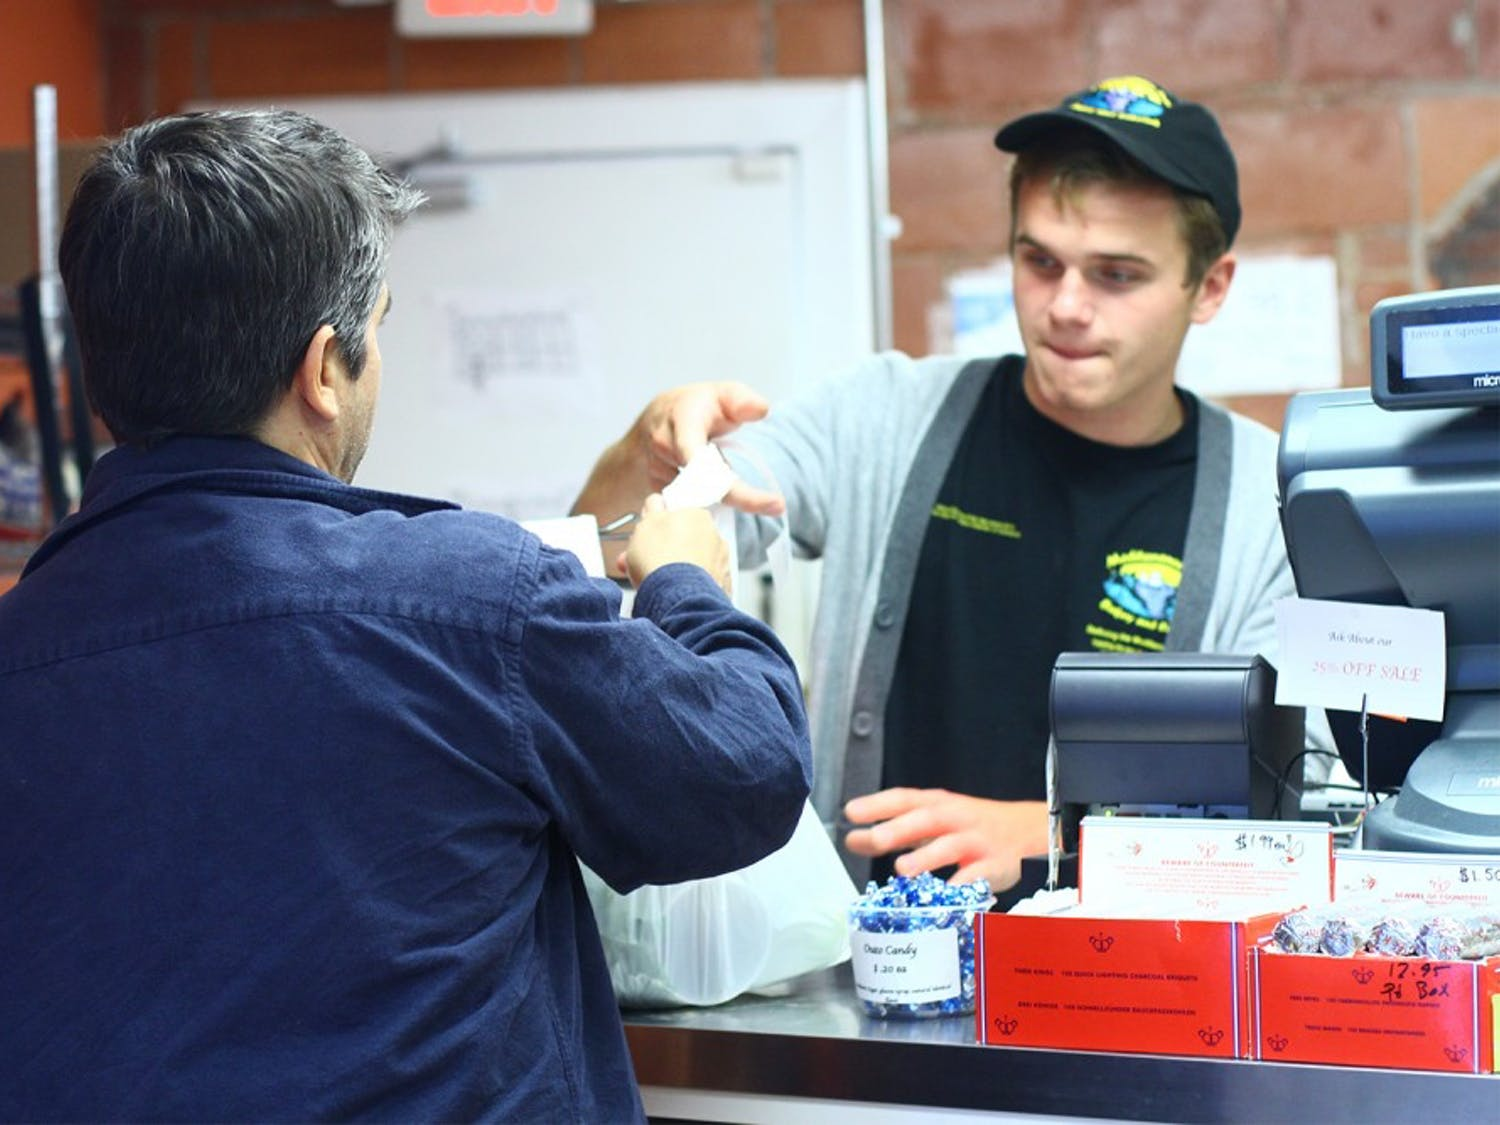 Steve Richichi of Chapel Hill, picks up a few things at the Mediterranean Deli Market on Monday evening. He says he enjoys the fresh produce and the prices are great too. Employee, Lukas Zdanavicius.